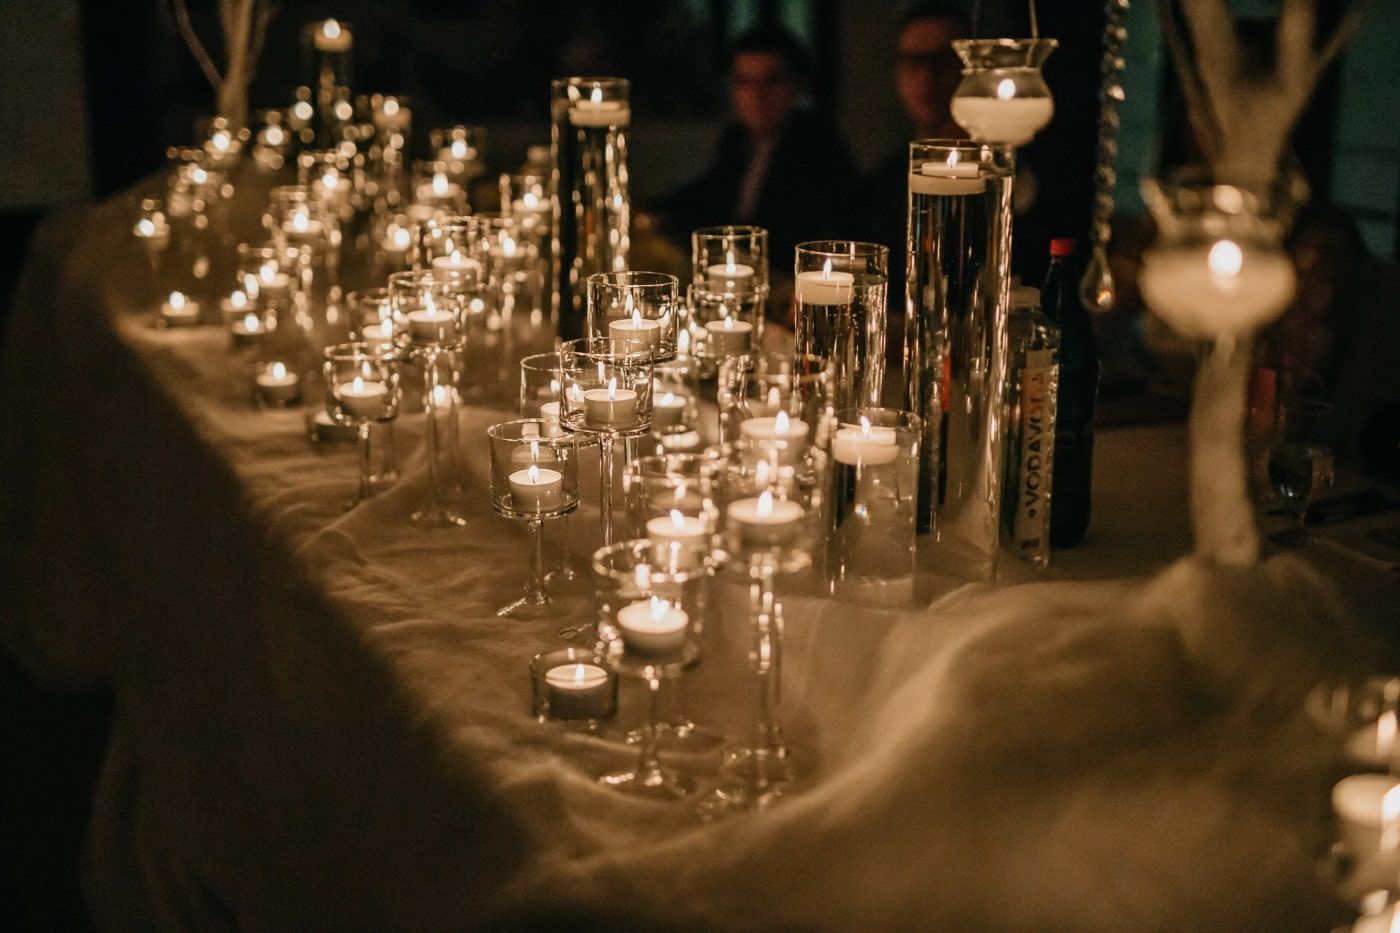 candlestick, candles, candlelight, elegance, romantic, dark, shadow, restaurant, glass, candle